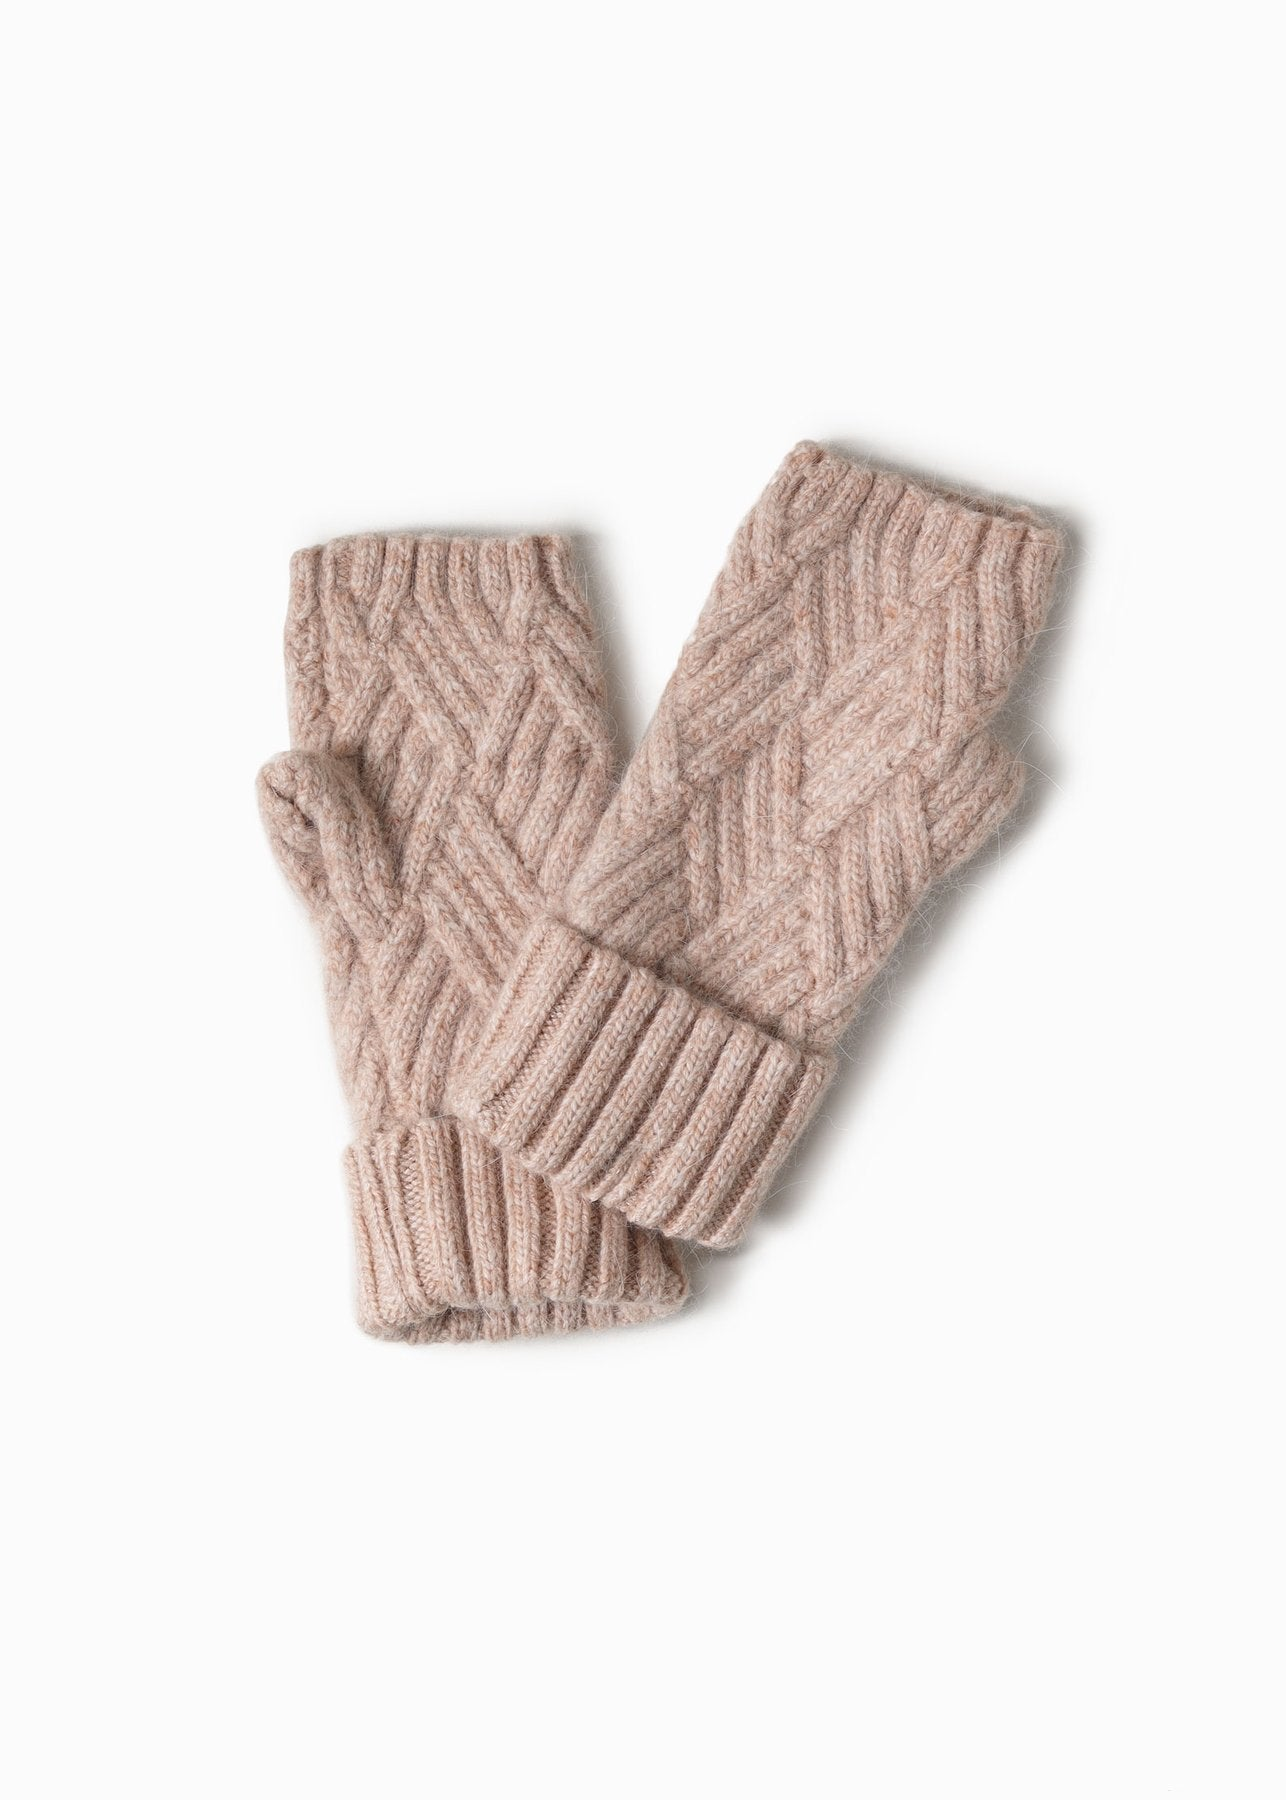 Chevy Woven Fingerless Gloves in Blush